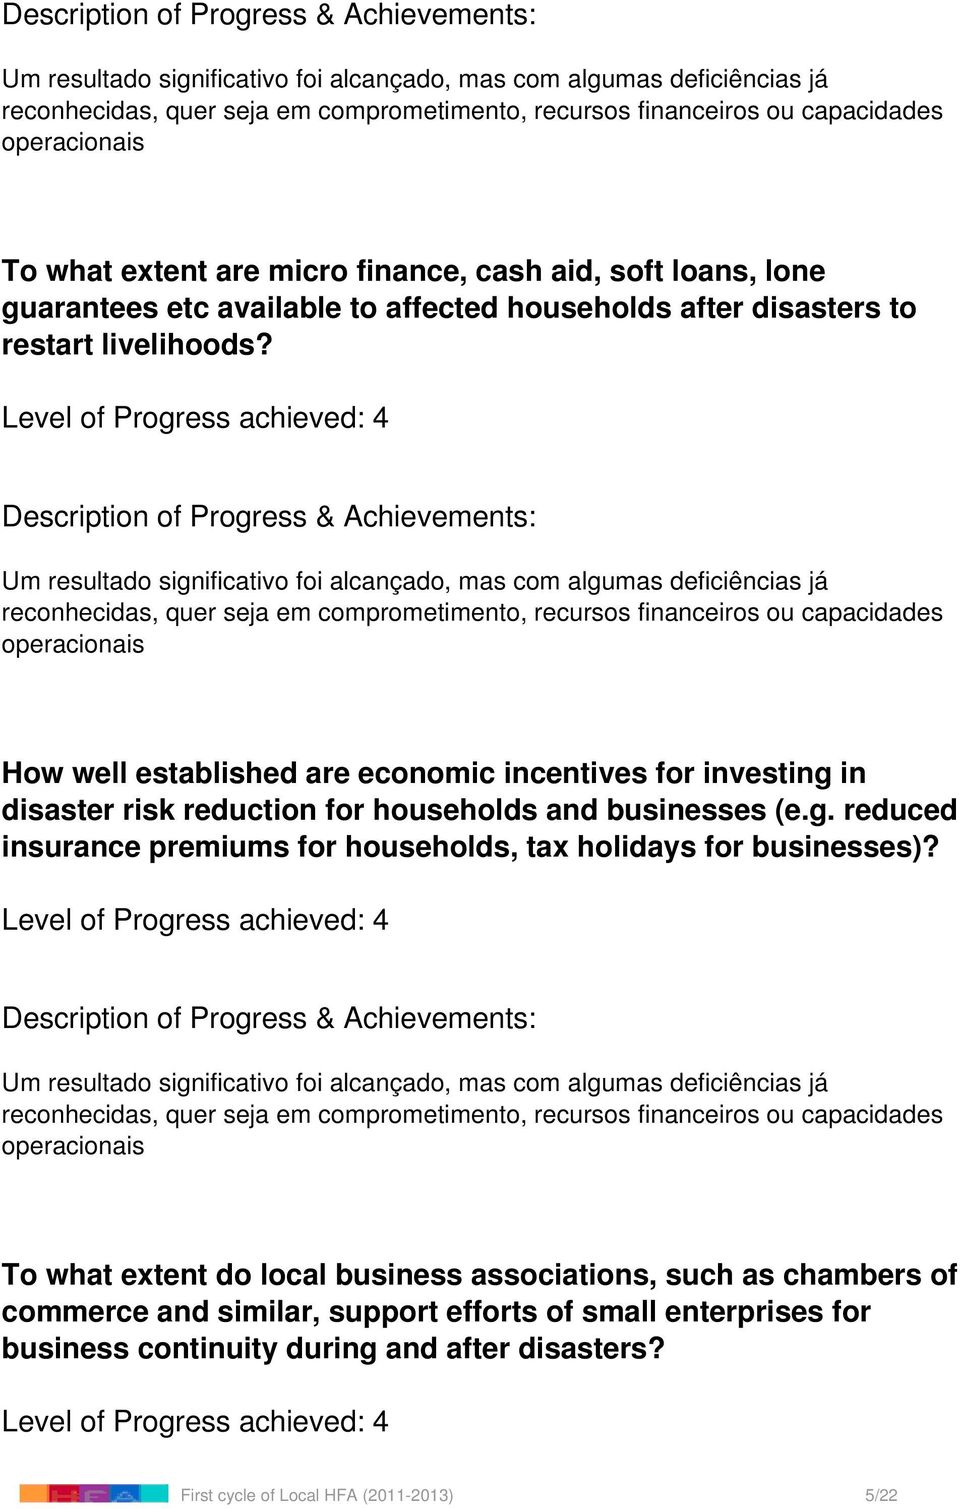 in disaster risk reduction for households and businesses (e.g. reduced insurance premiums for households, tax holidays for businesses)?